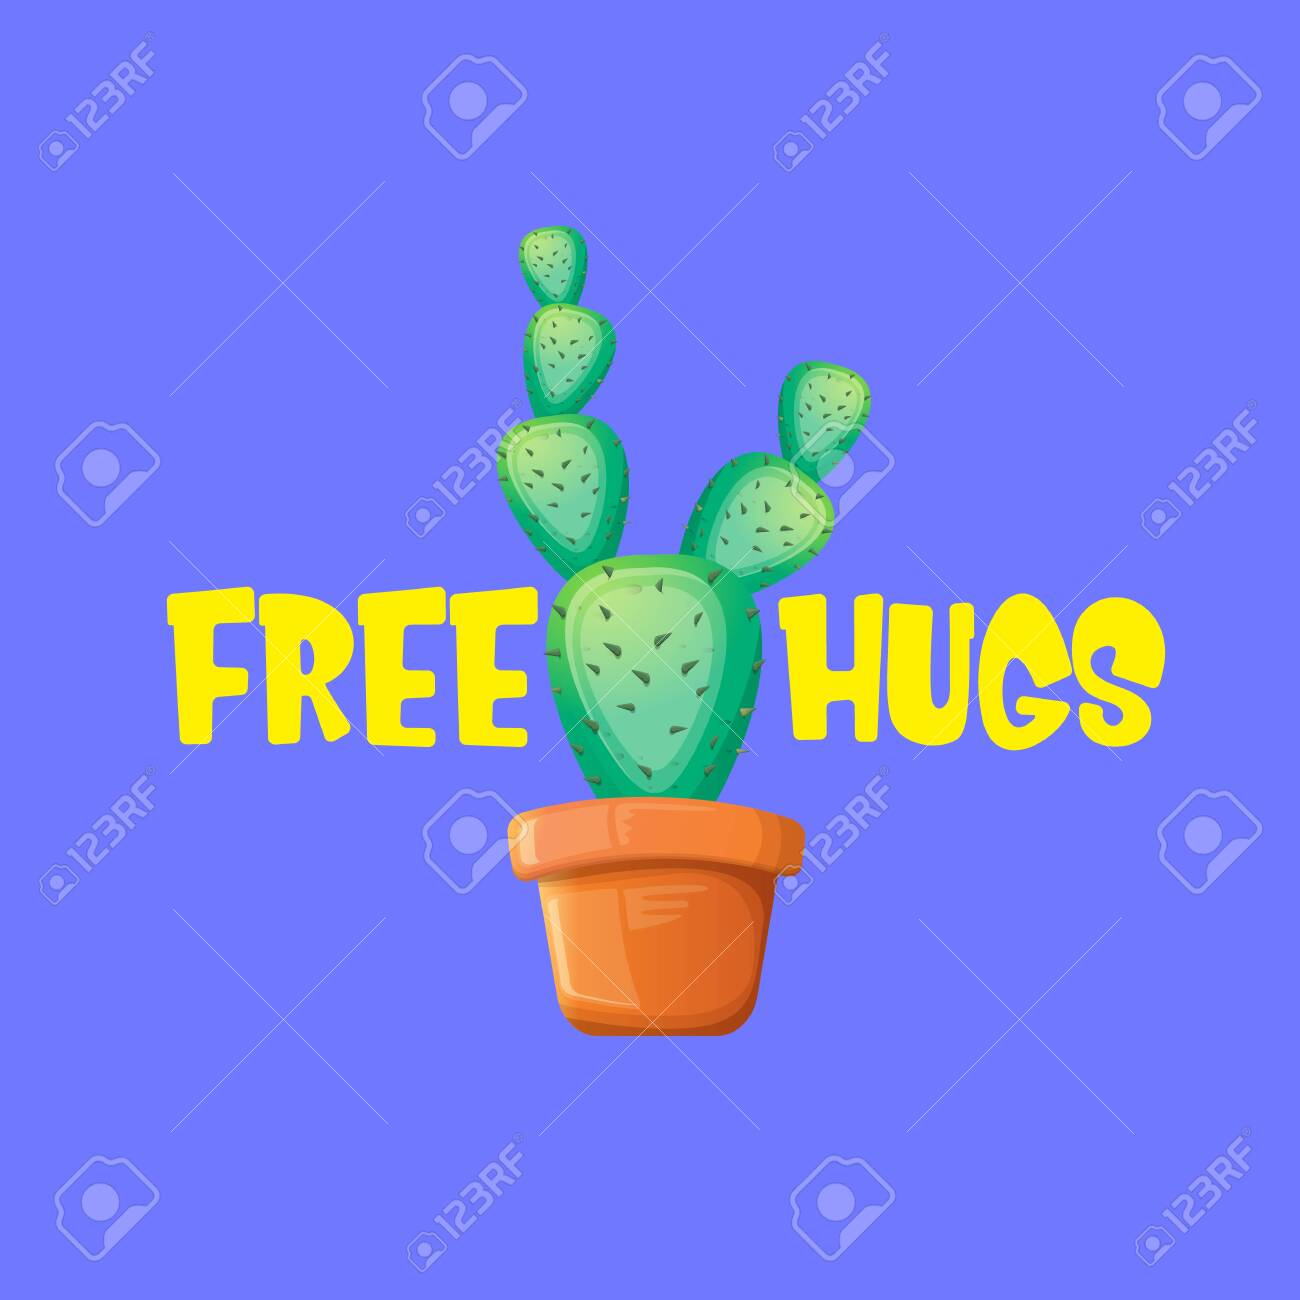 Free hugs text and cartoon green cactus in pot isolated on violet